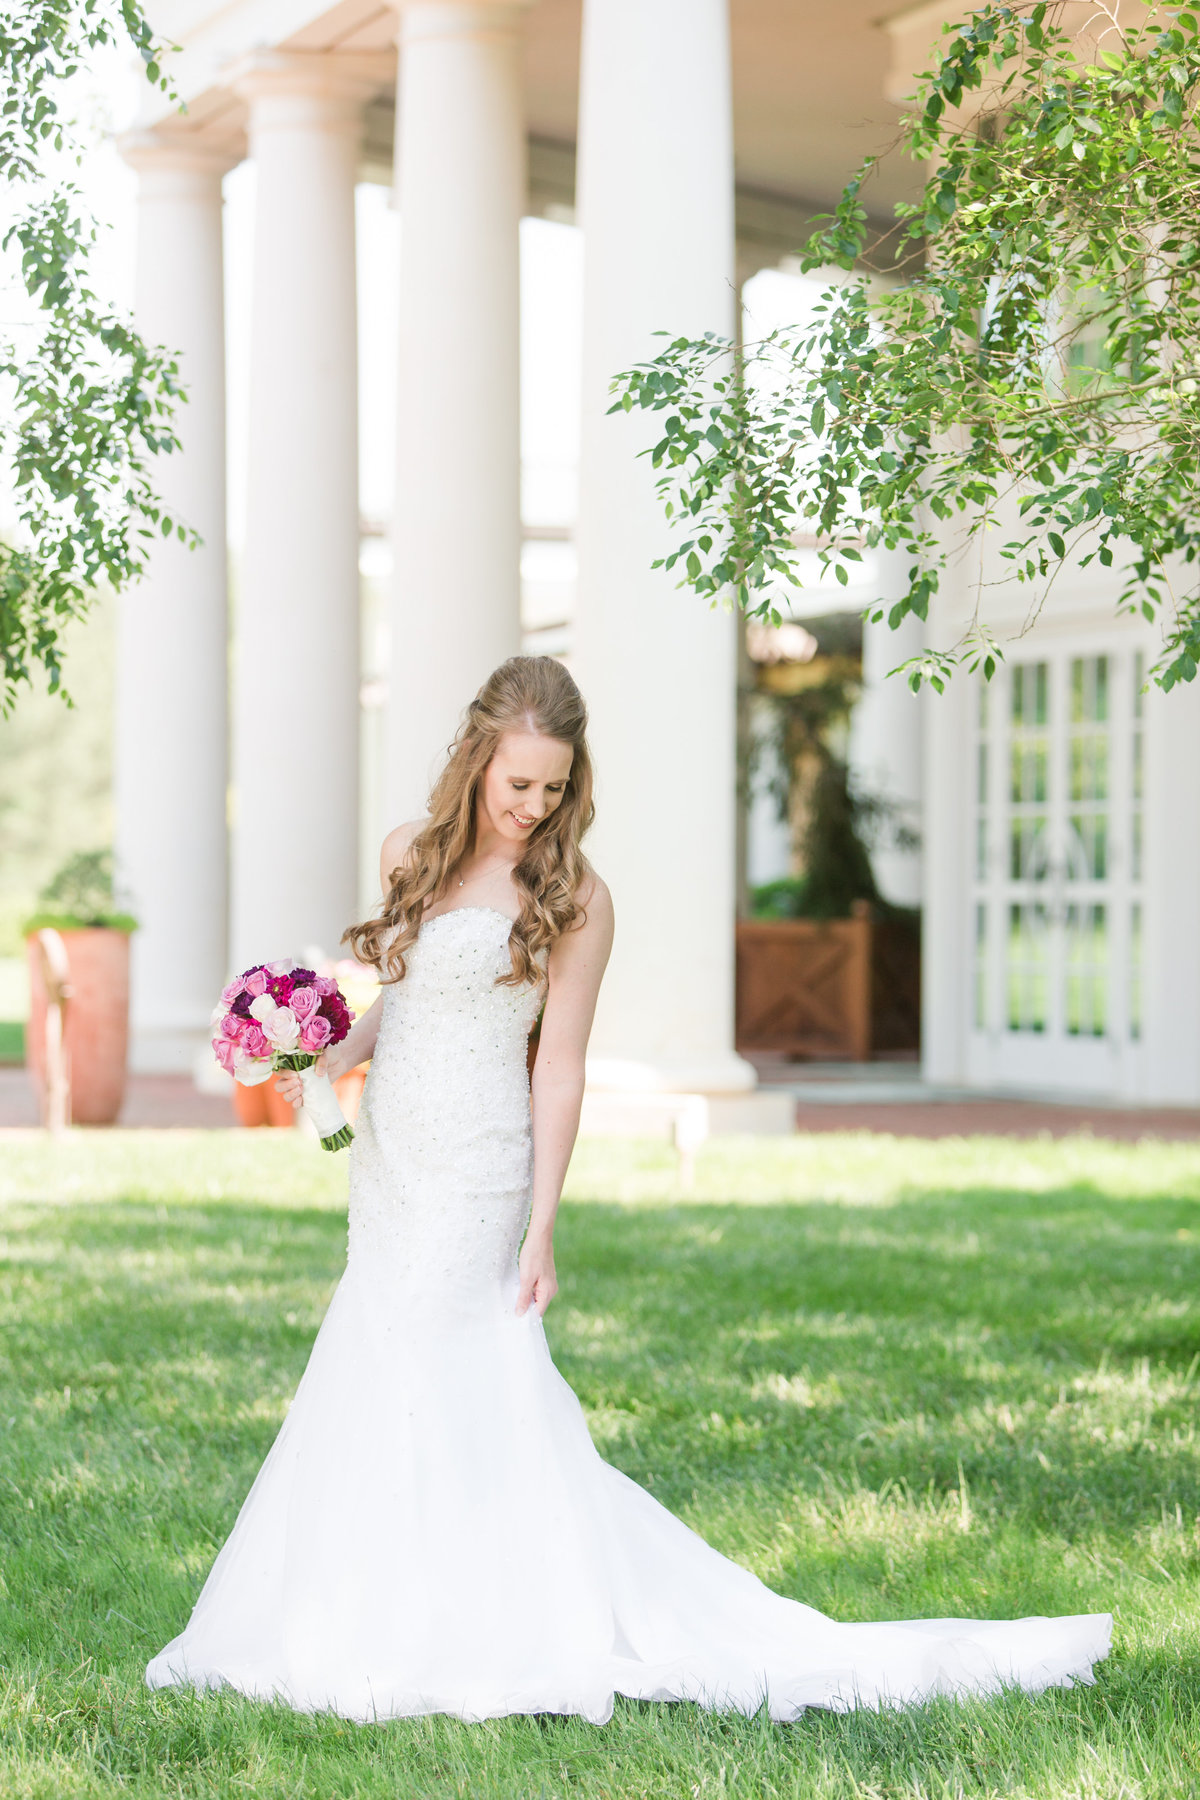 Greenville Bridal Portraits | Jenny Williams Photography 2